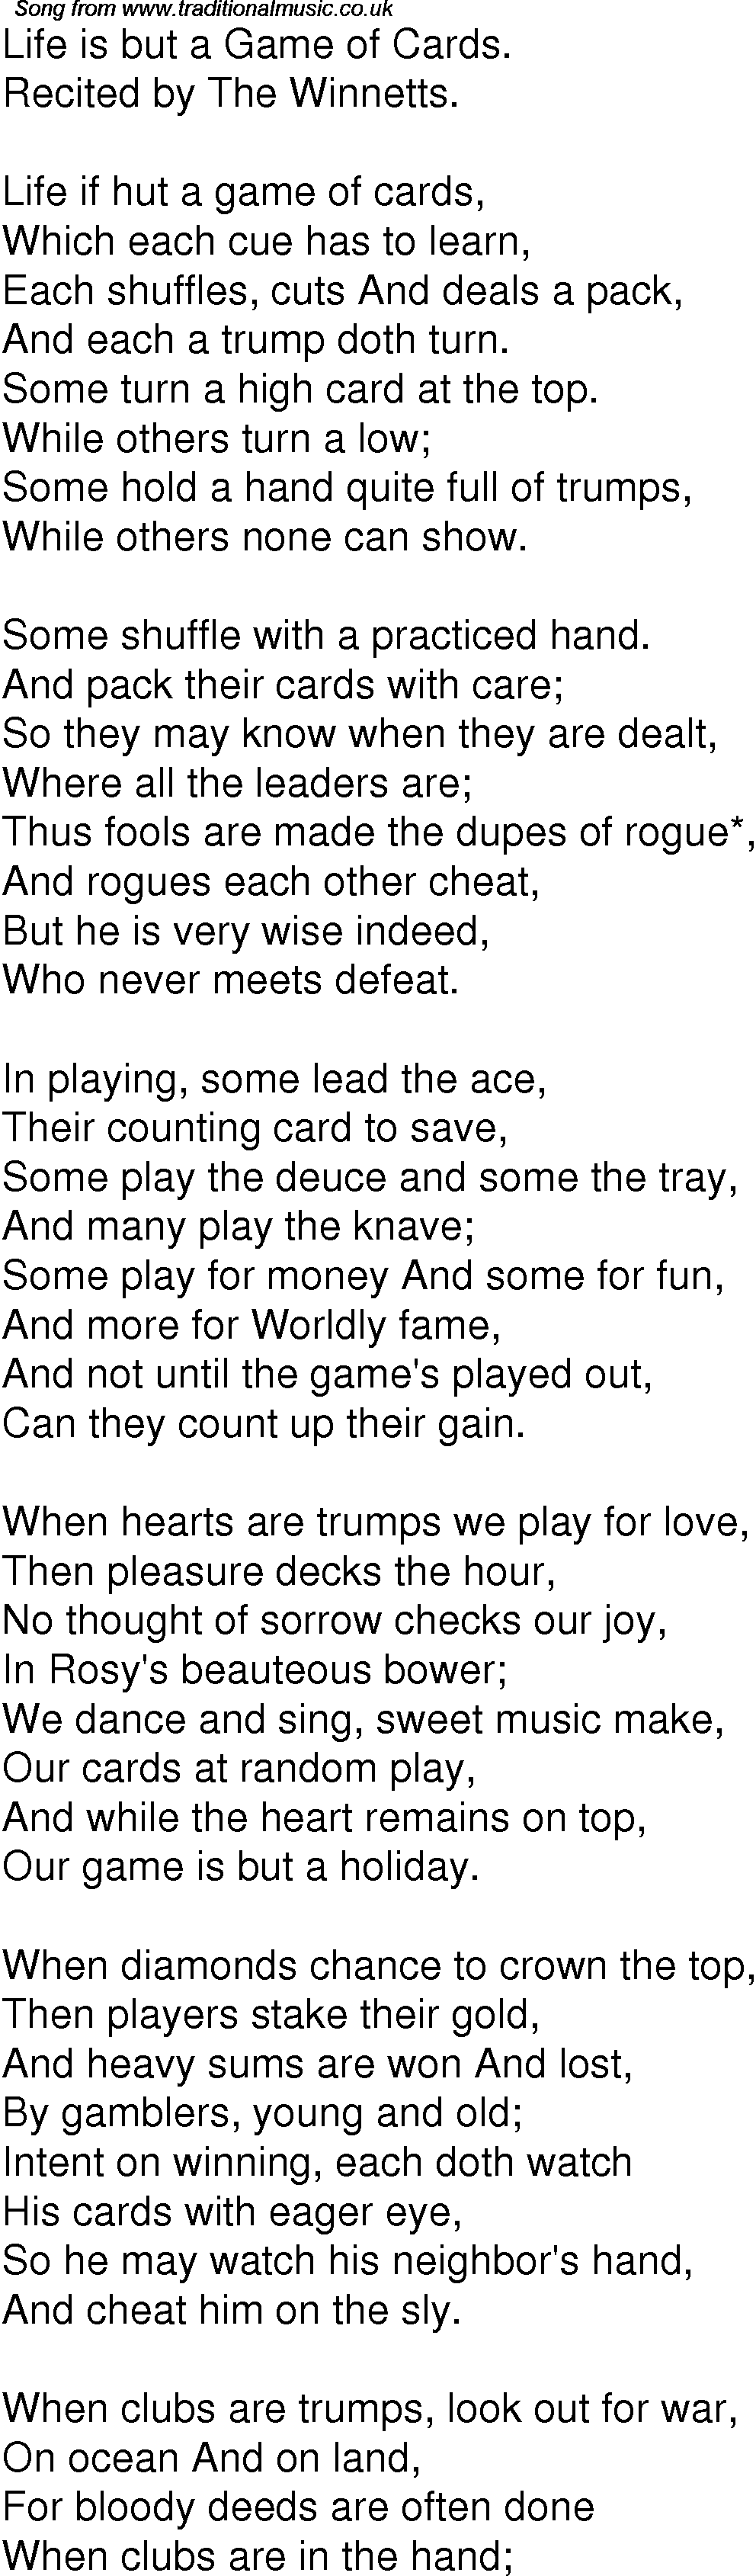 Old Time Song Lyrics For 05 Life Is But A Game Of Cards